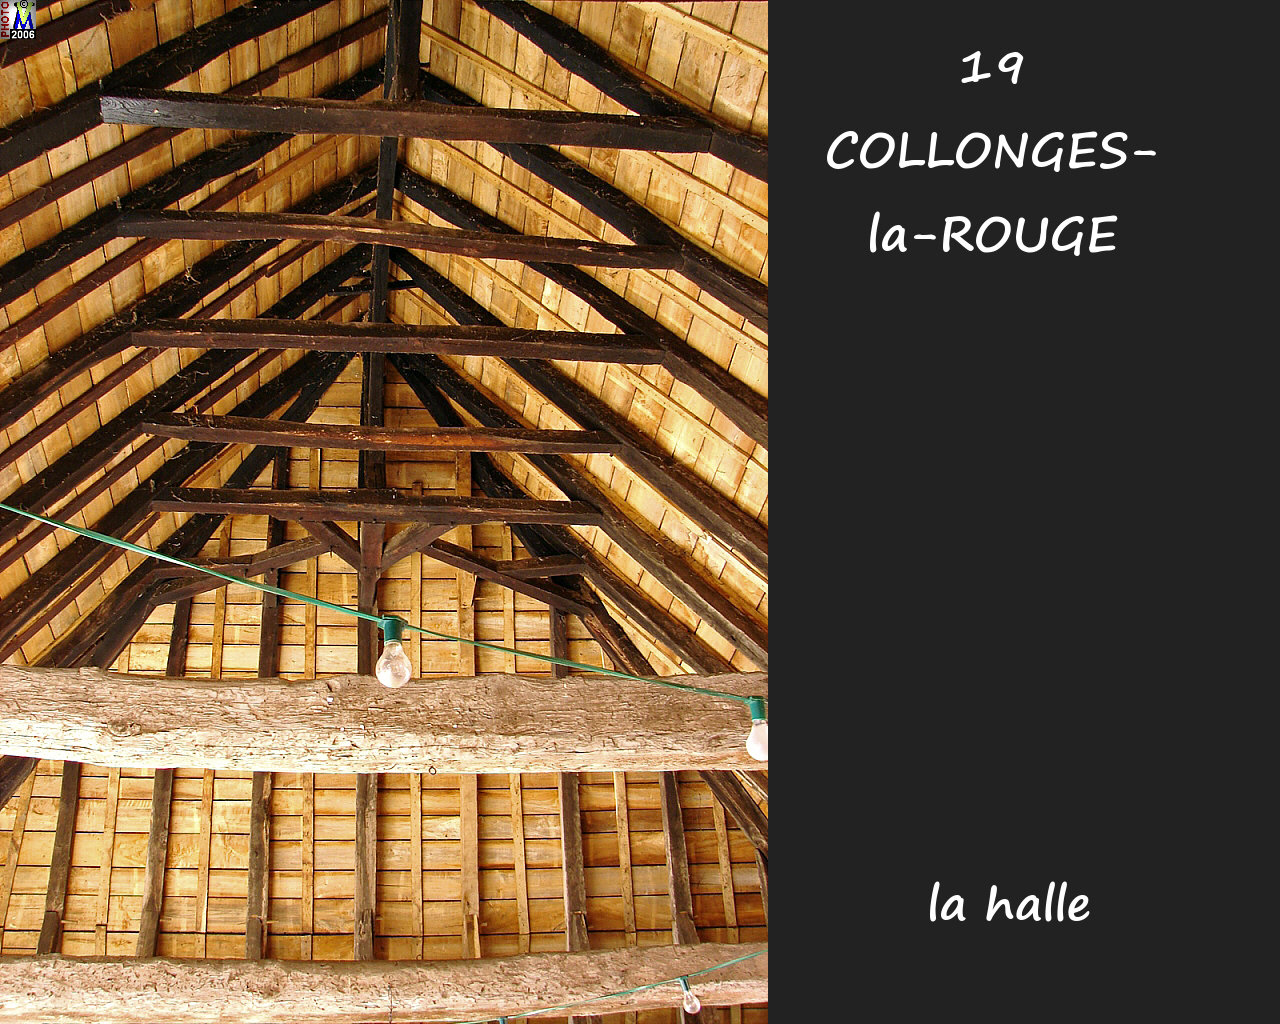 19COLLONGES-ROUGE_halle_202.jpg